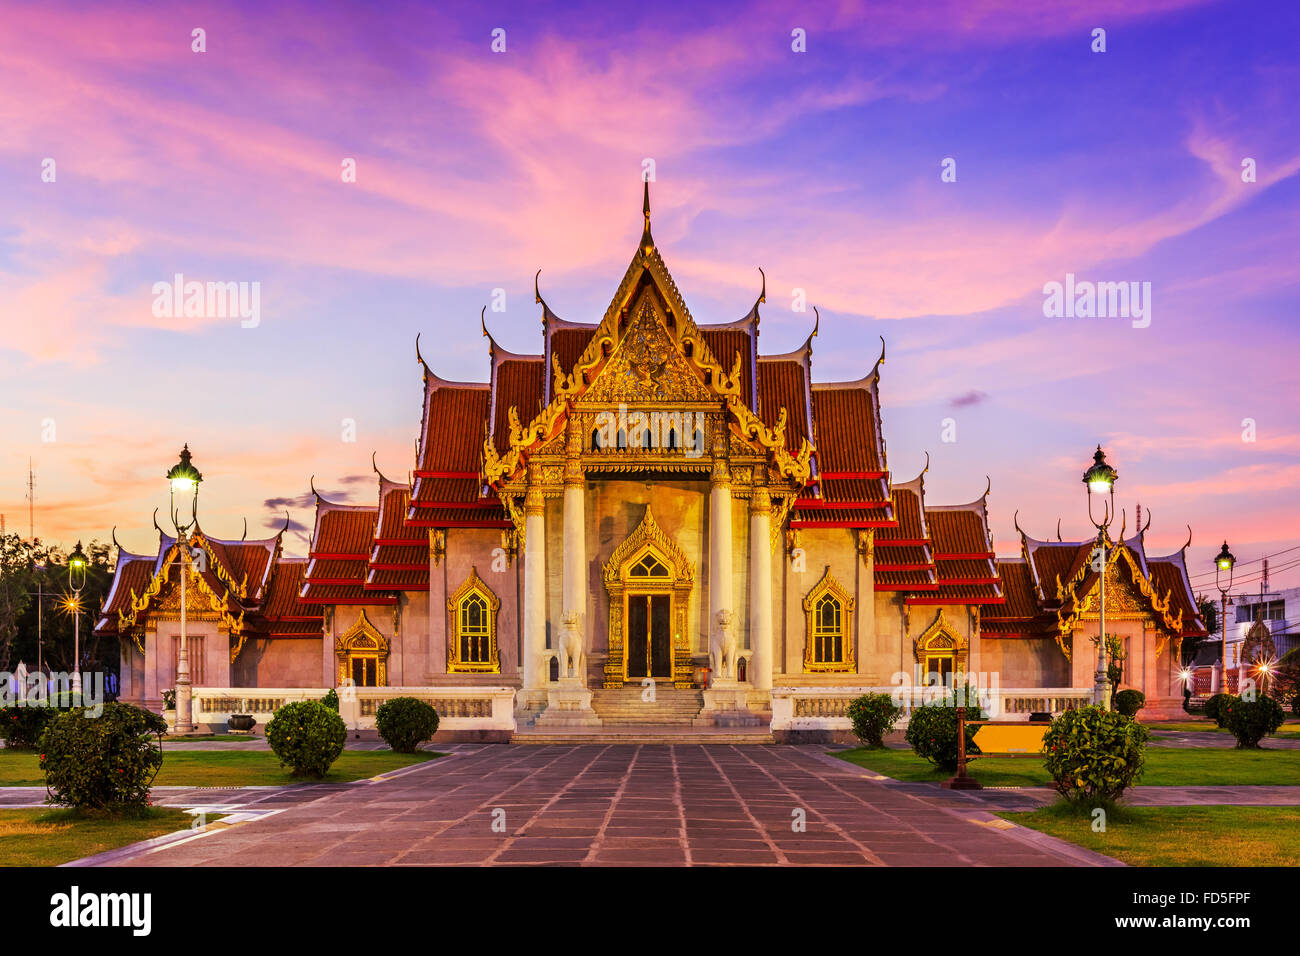 Bangkok, Thailand. The Marble Temple, Wat Benchamabopit Dusitvanaram at sunset. - Stock Image